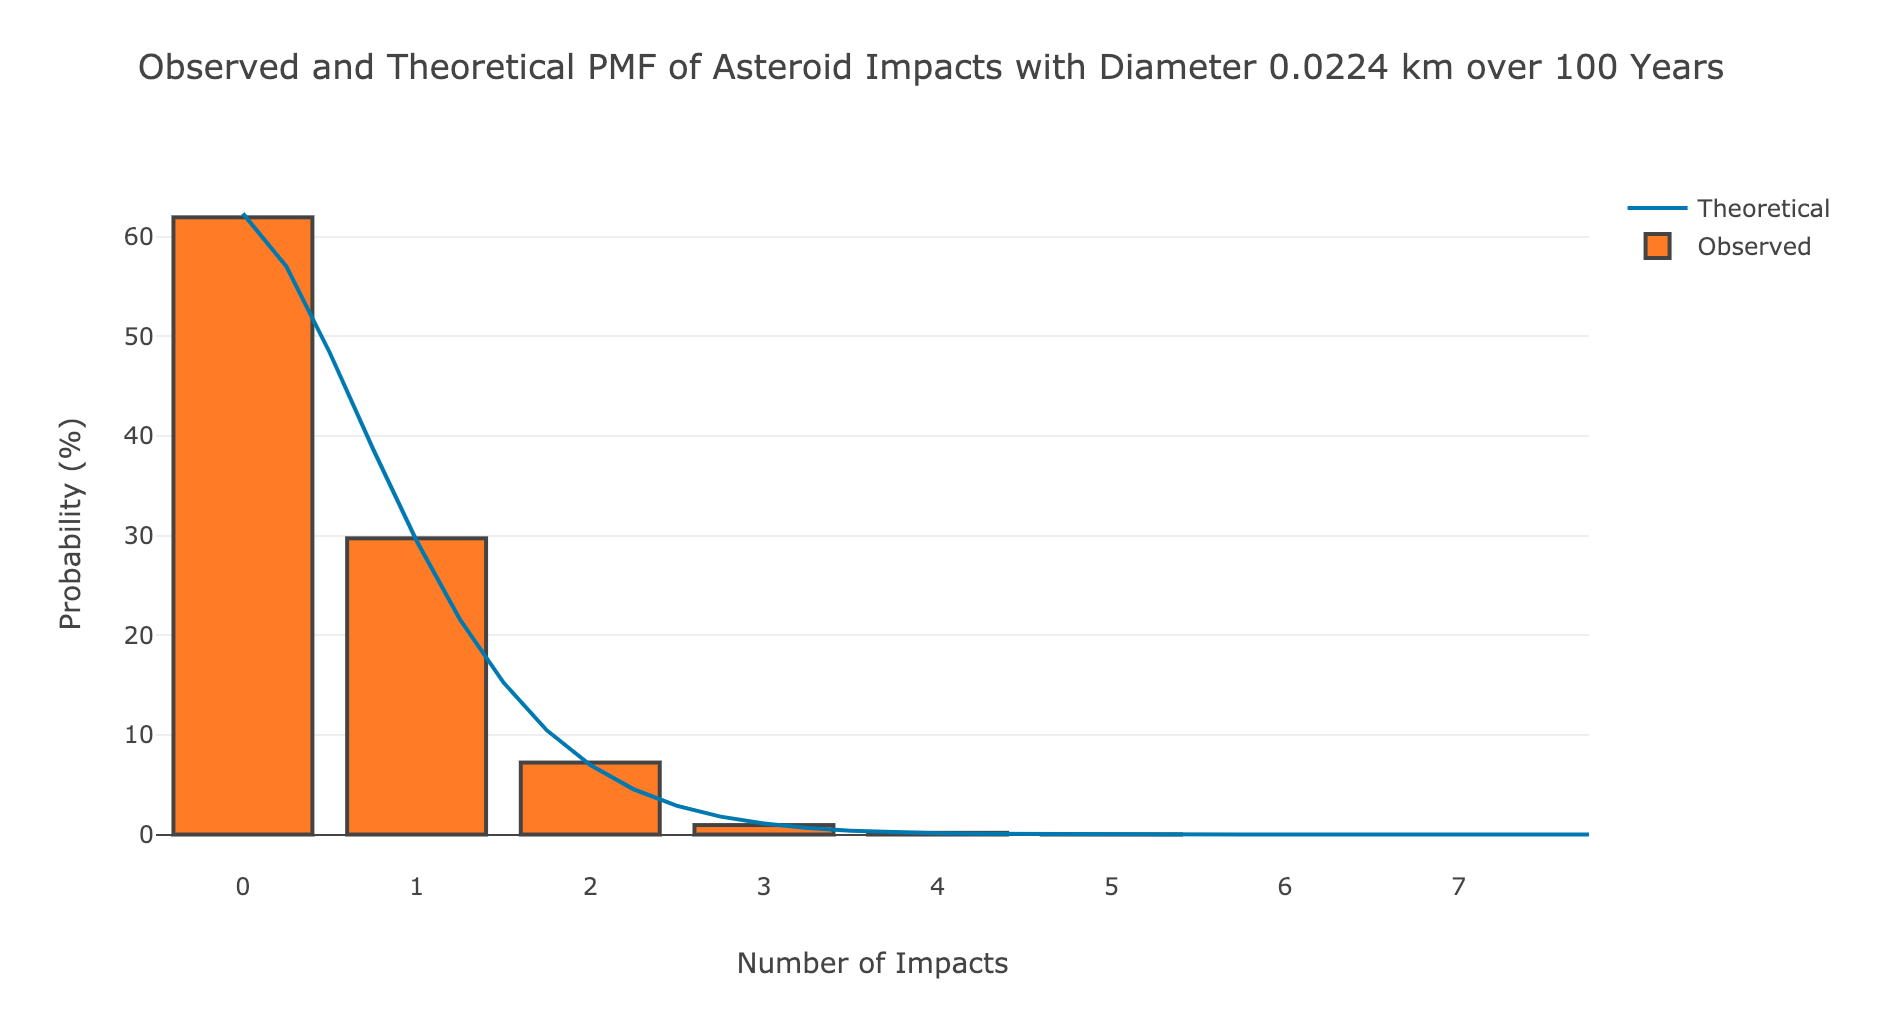 Predicting the Frequency of Asteroid Impacts with a Poisson Processes